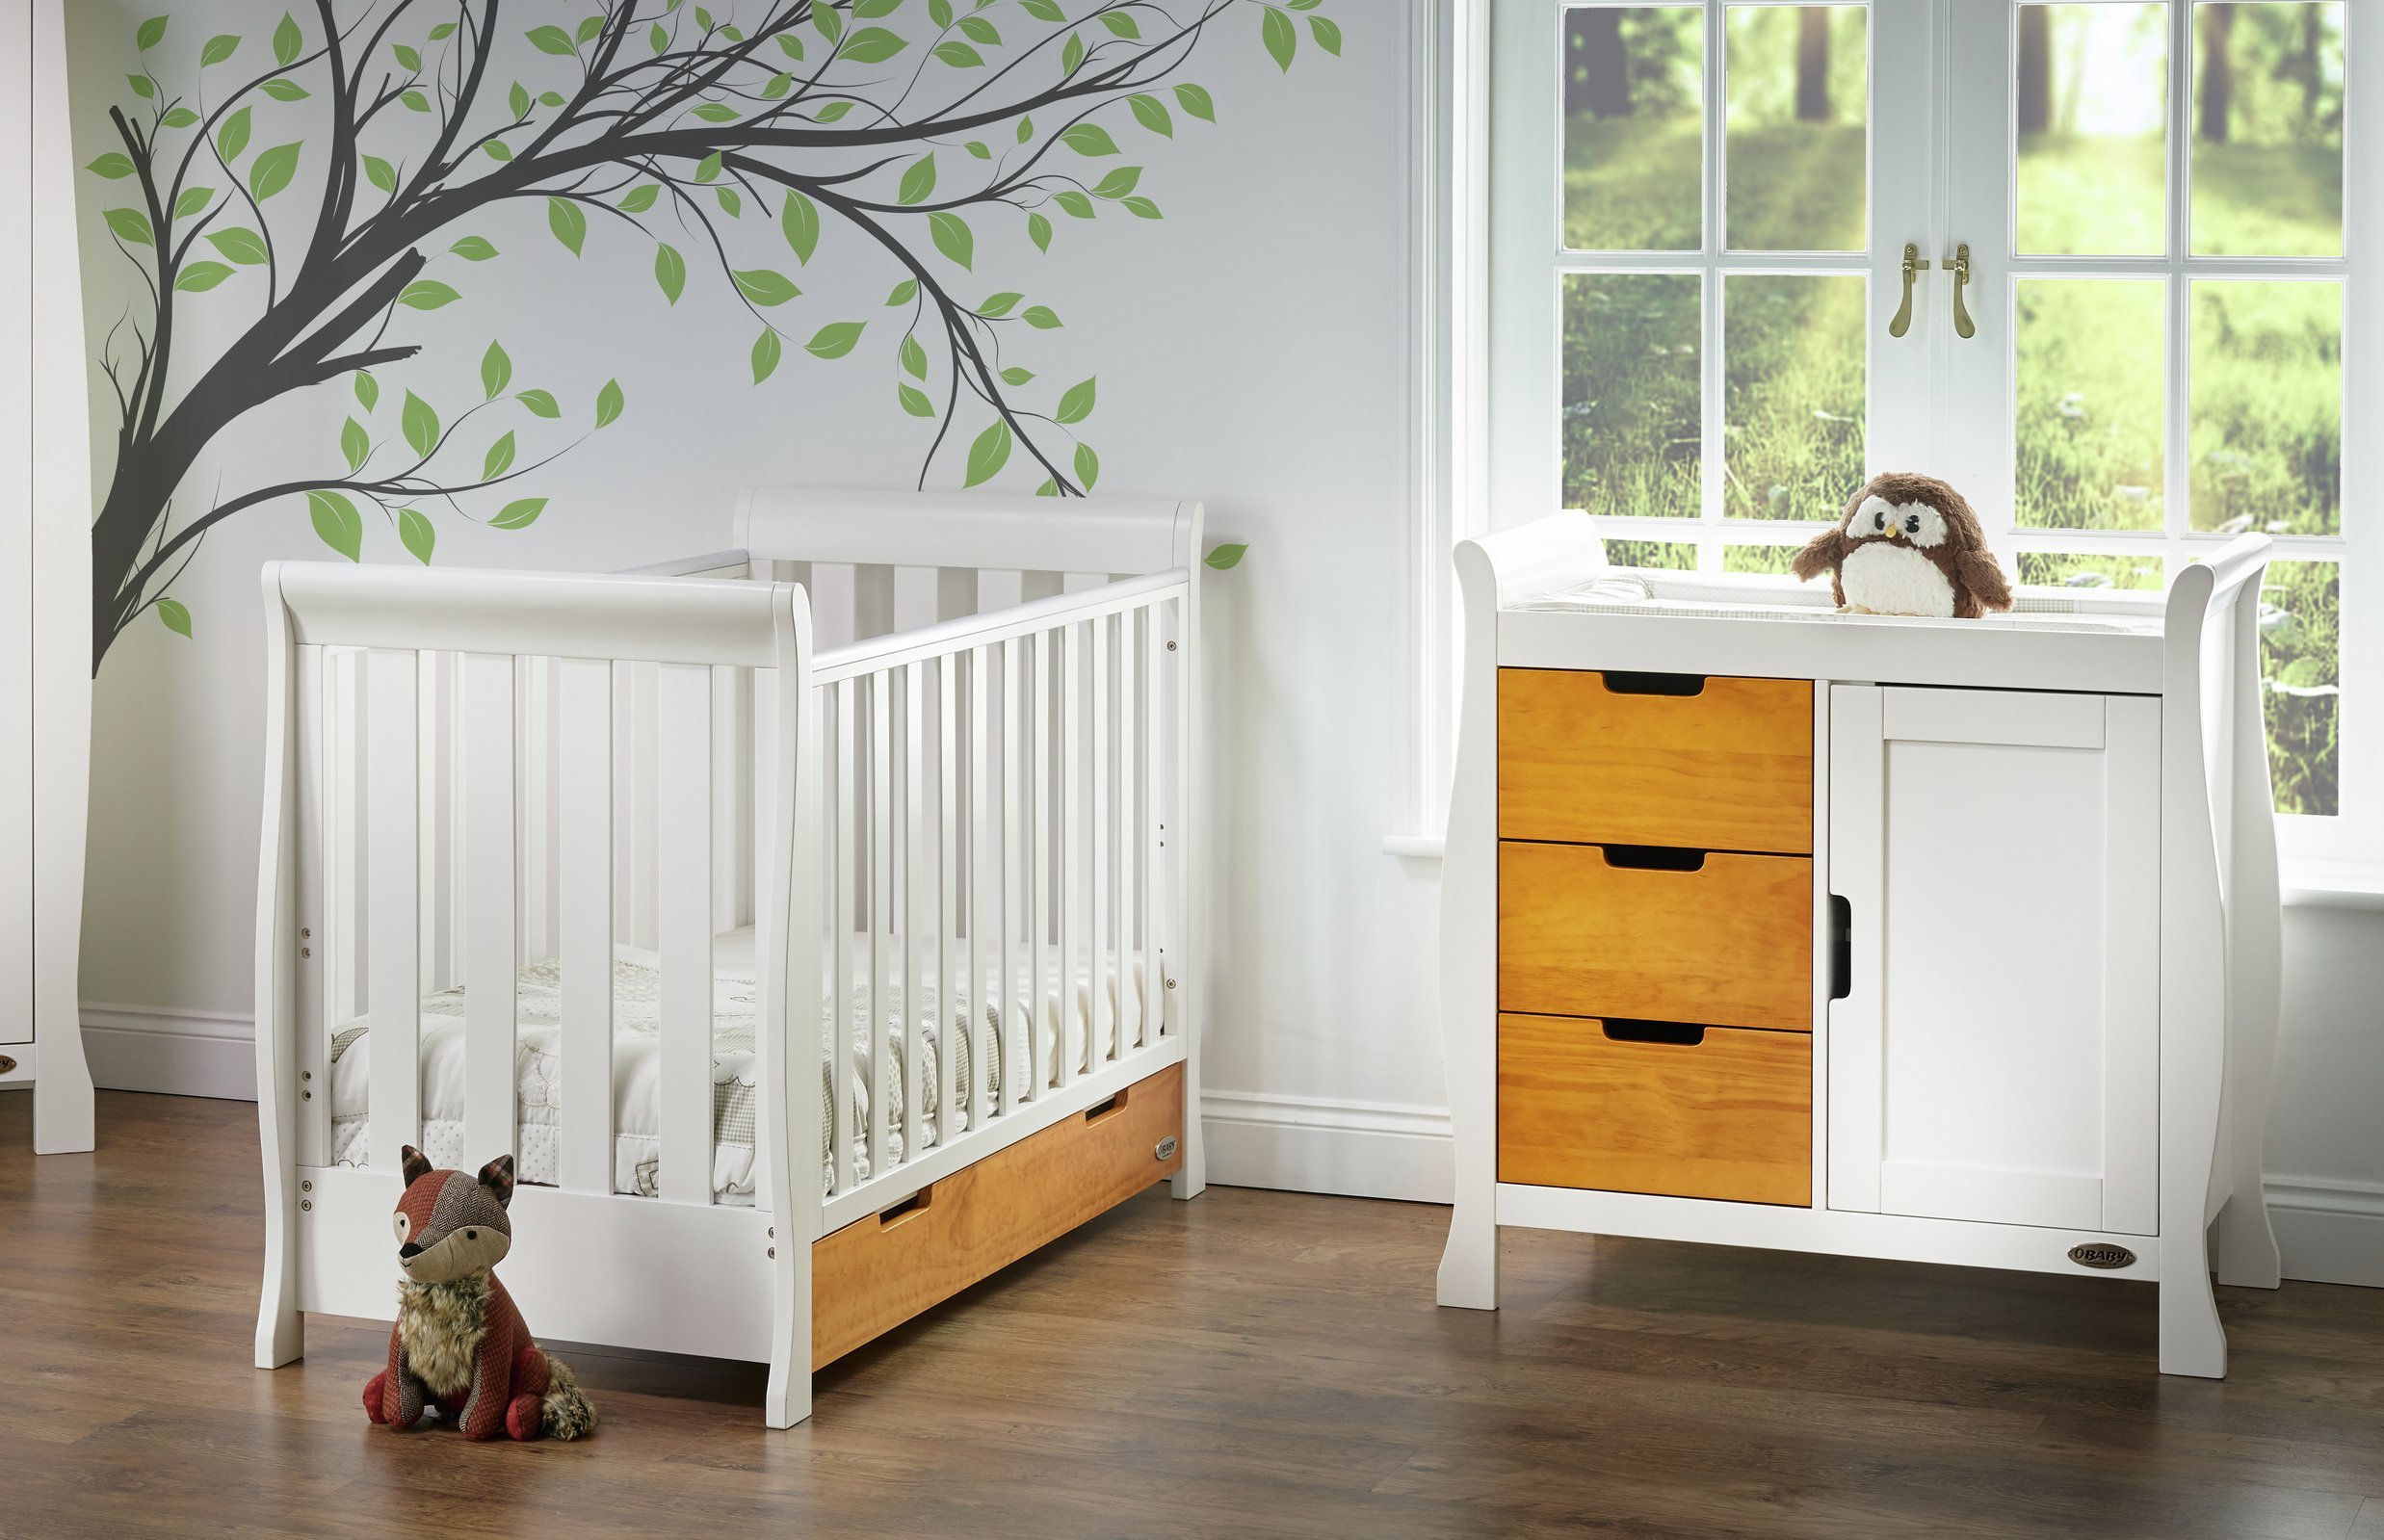 Obaby Stamford Mini 2 Piece Room Set - White with Pine